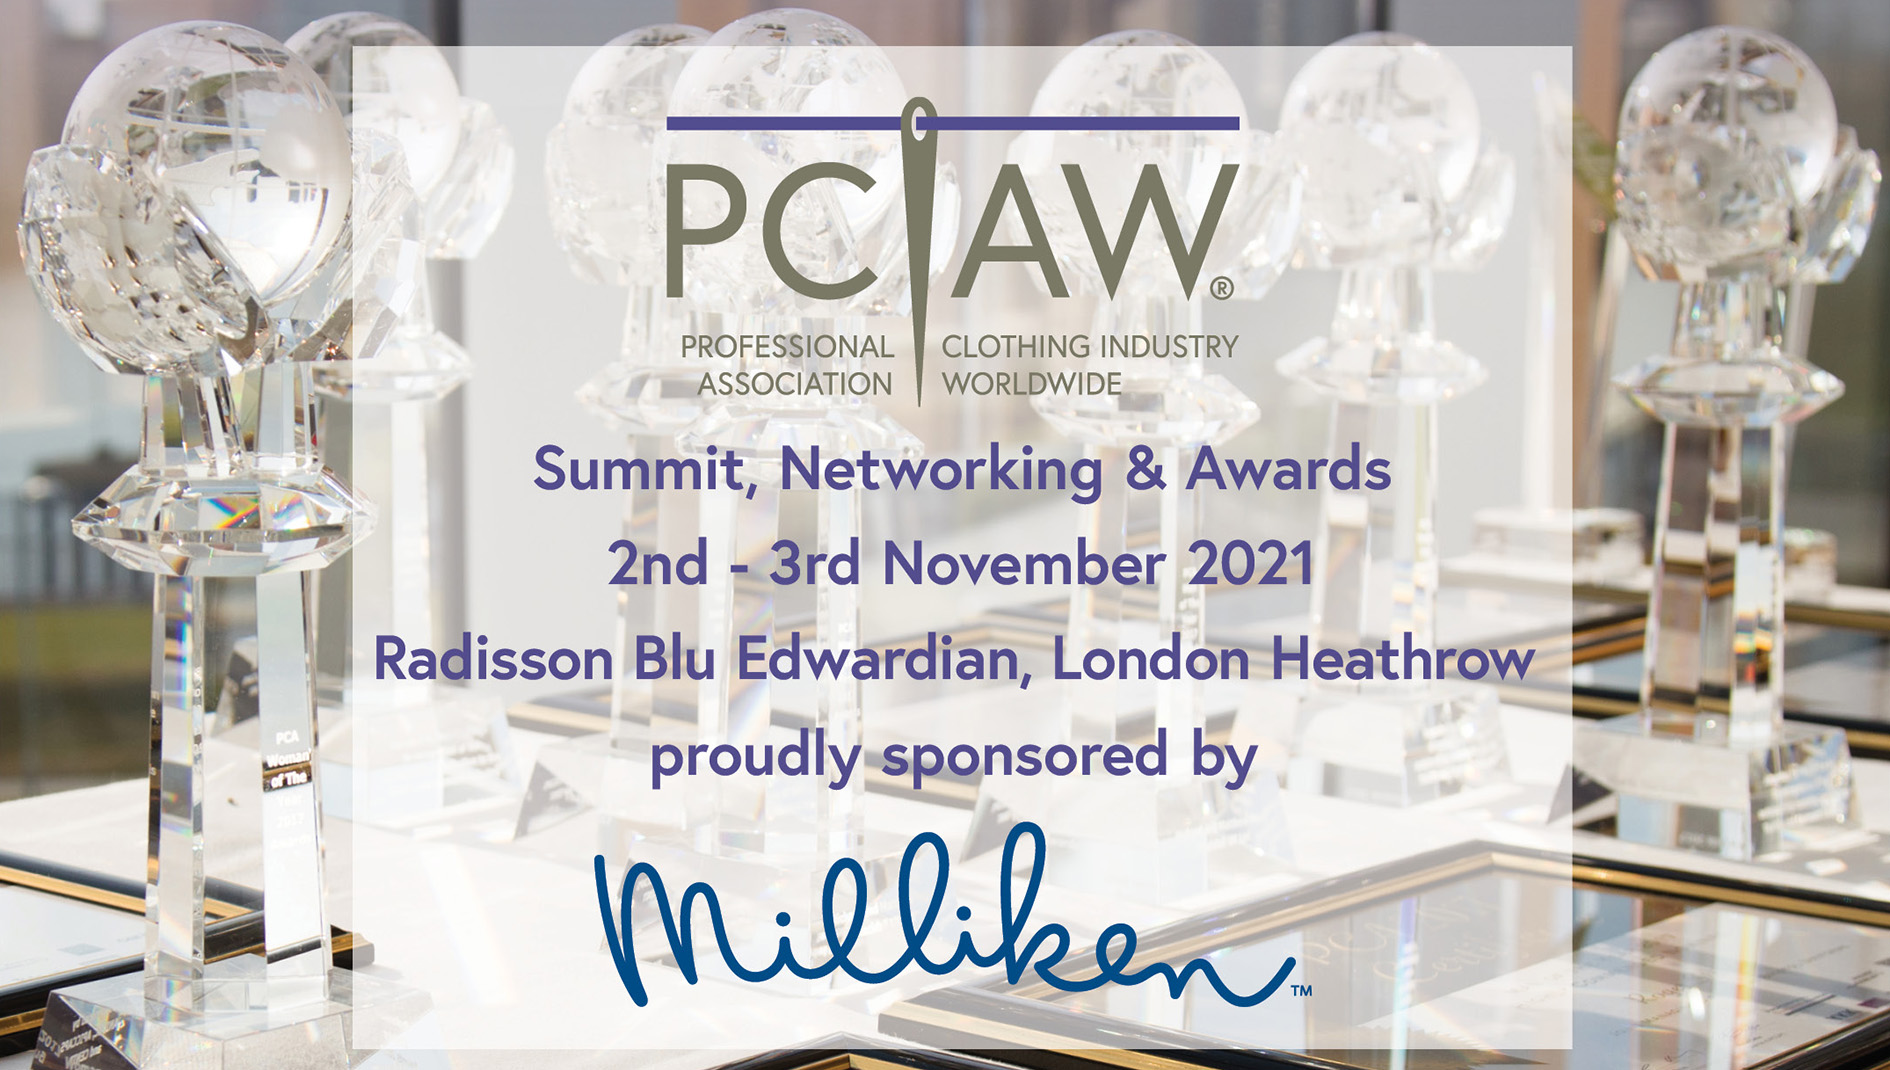 Andrew Newman, Director at the Birmingham 2022 Commonwealth Games, will be presenting the PCIAW® Key Workers Awards